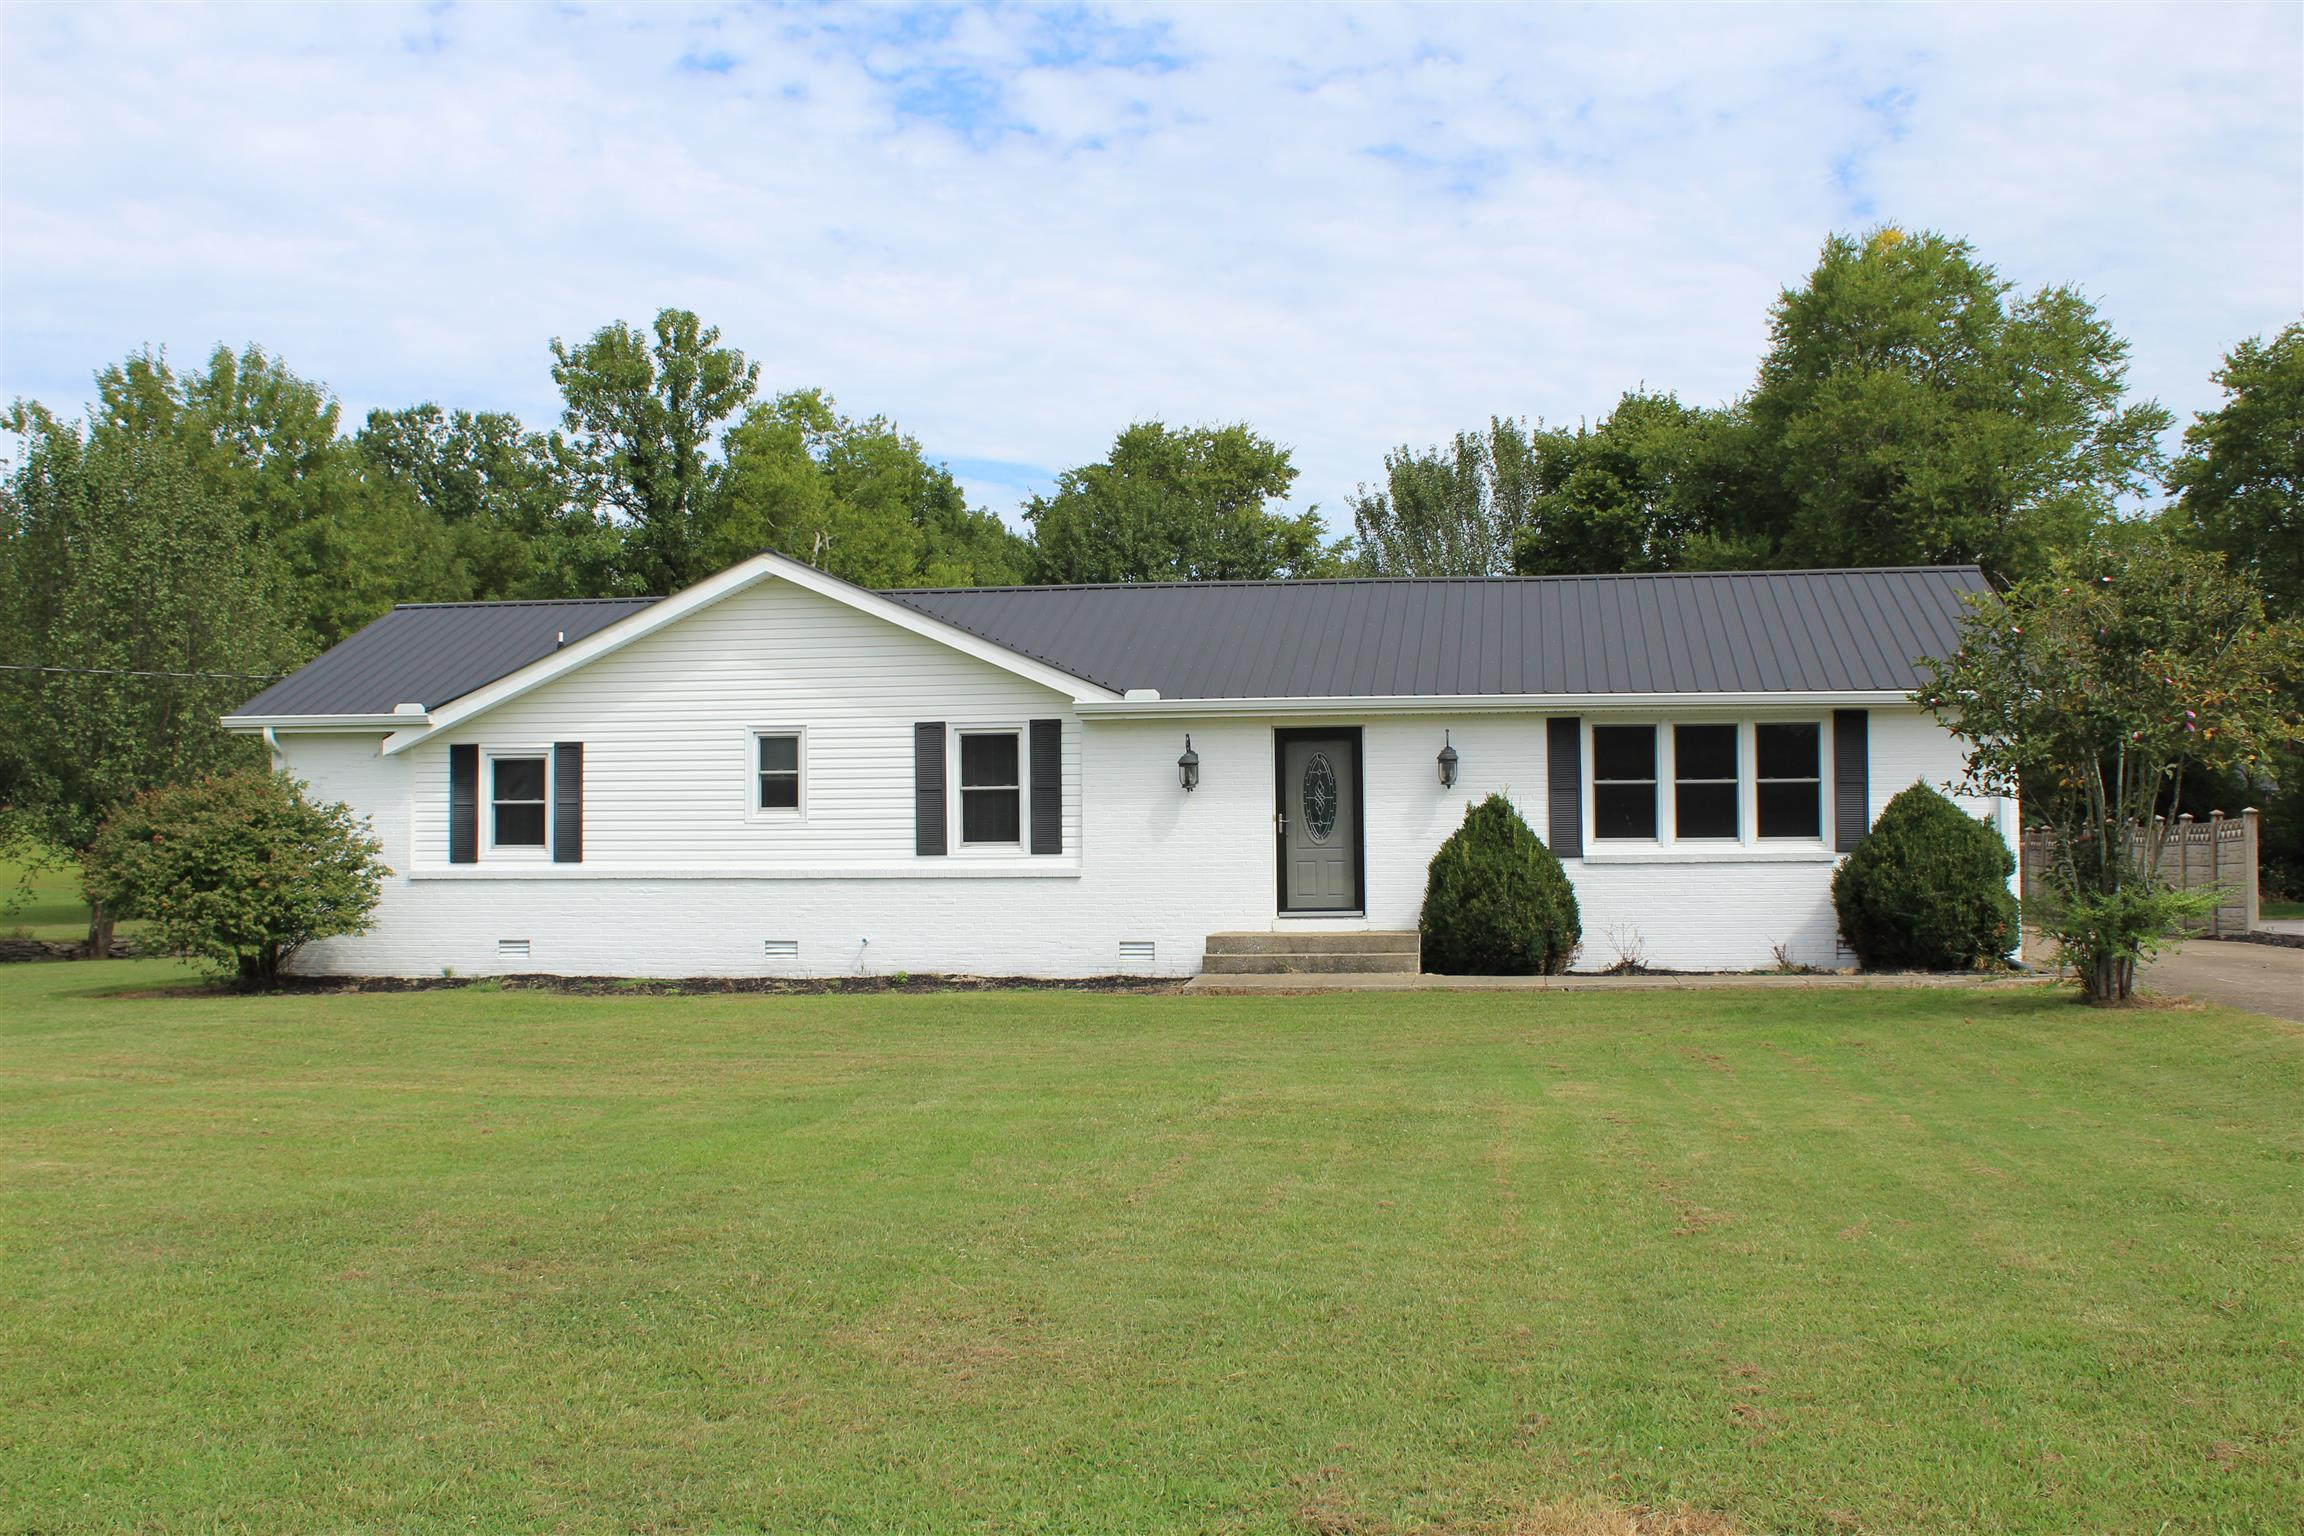 103 Chapman Dr, Lebanon in Wilson County County, TN 37087 Home for Sale